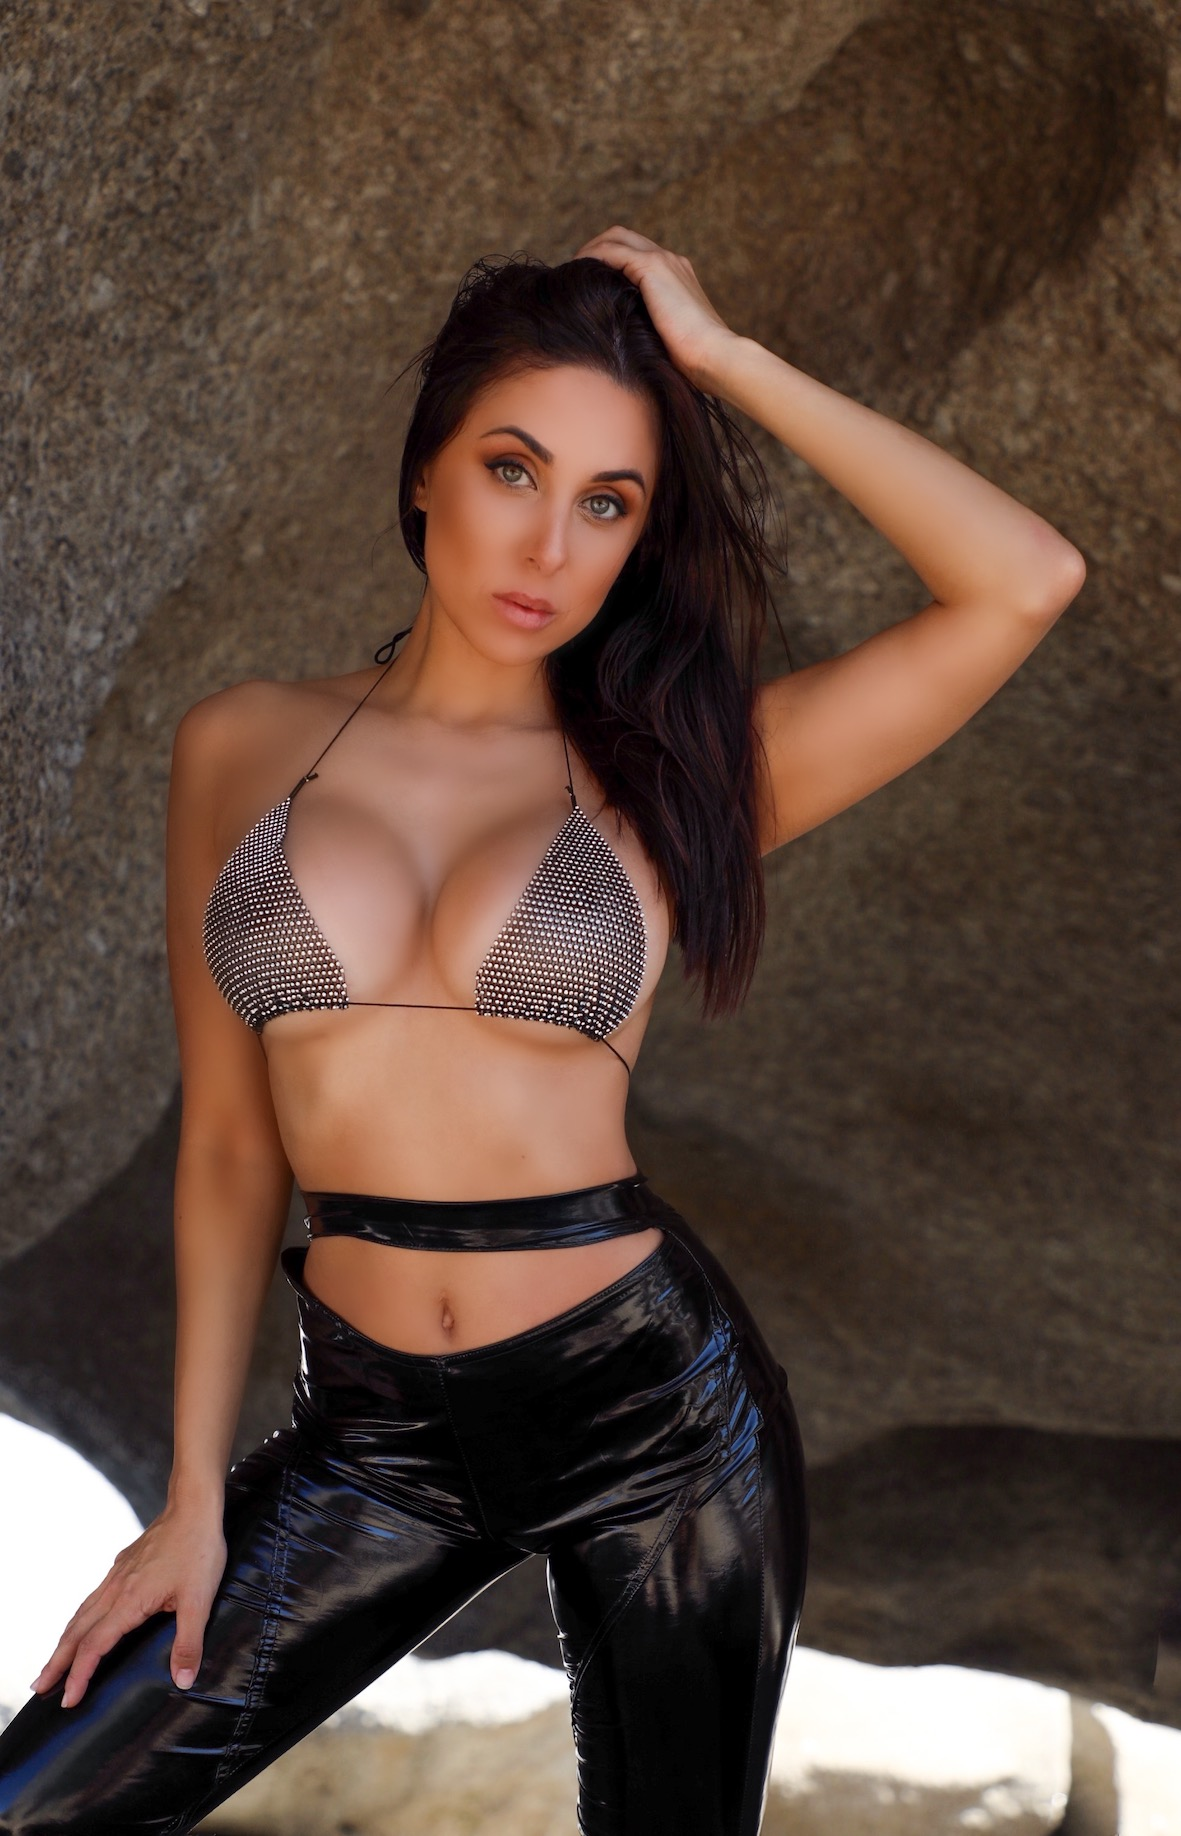 Meet Crystal Potgieter in our South African Babes feature